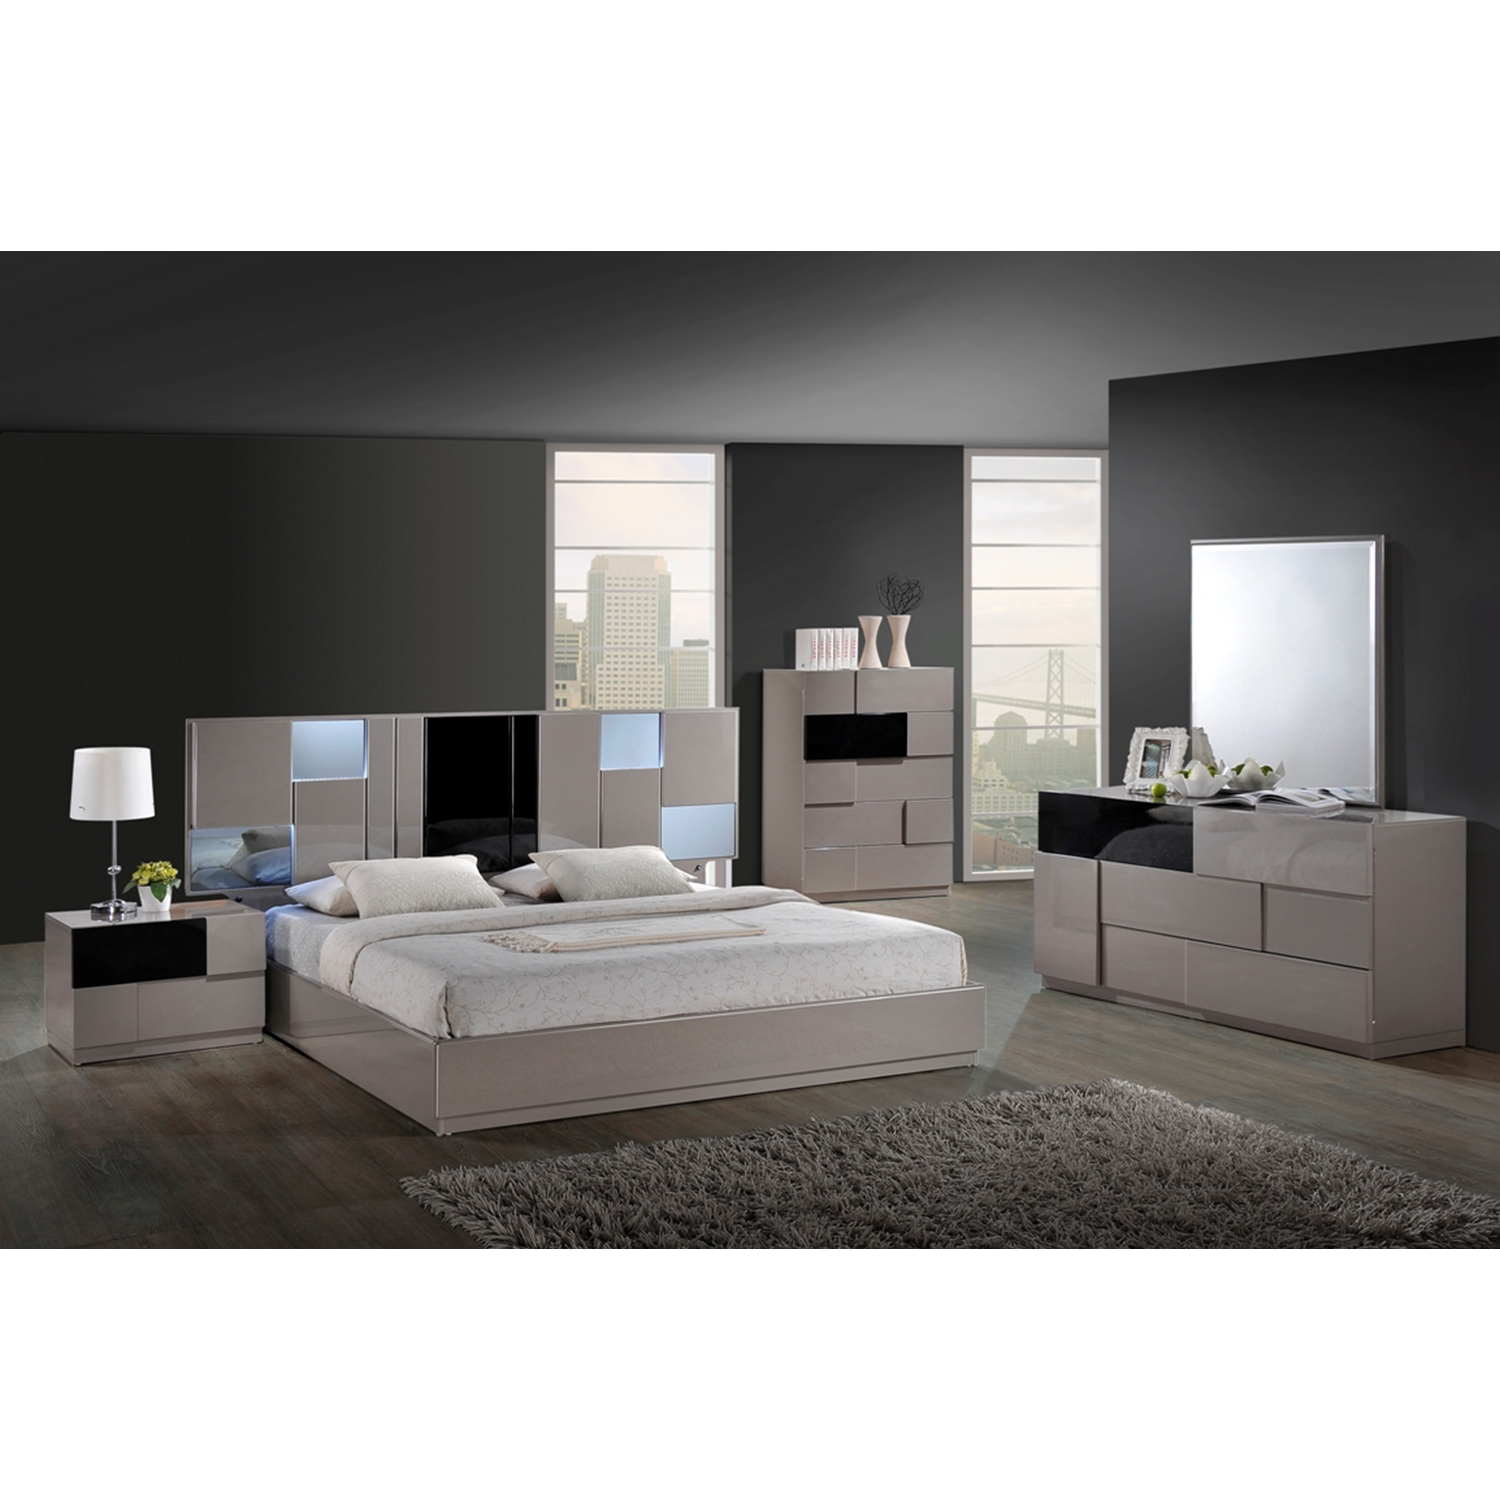 Bianca Bedroom Set in High Gloss Gray and Black